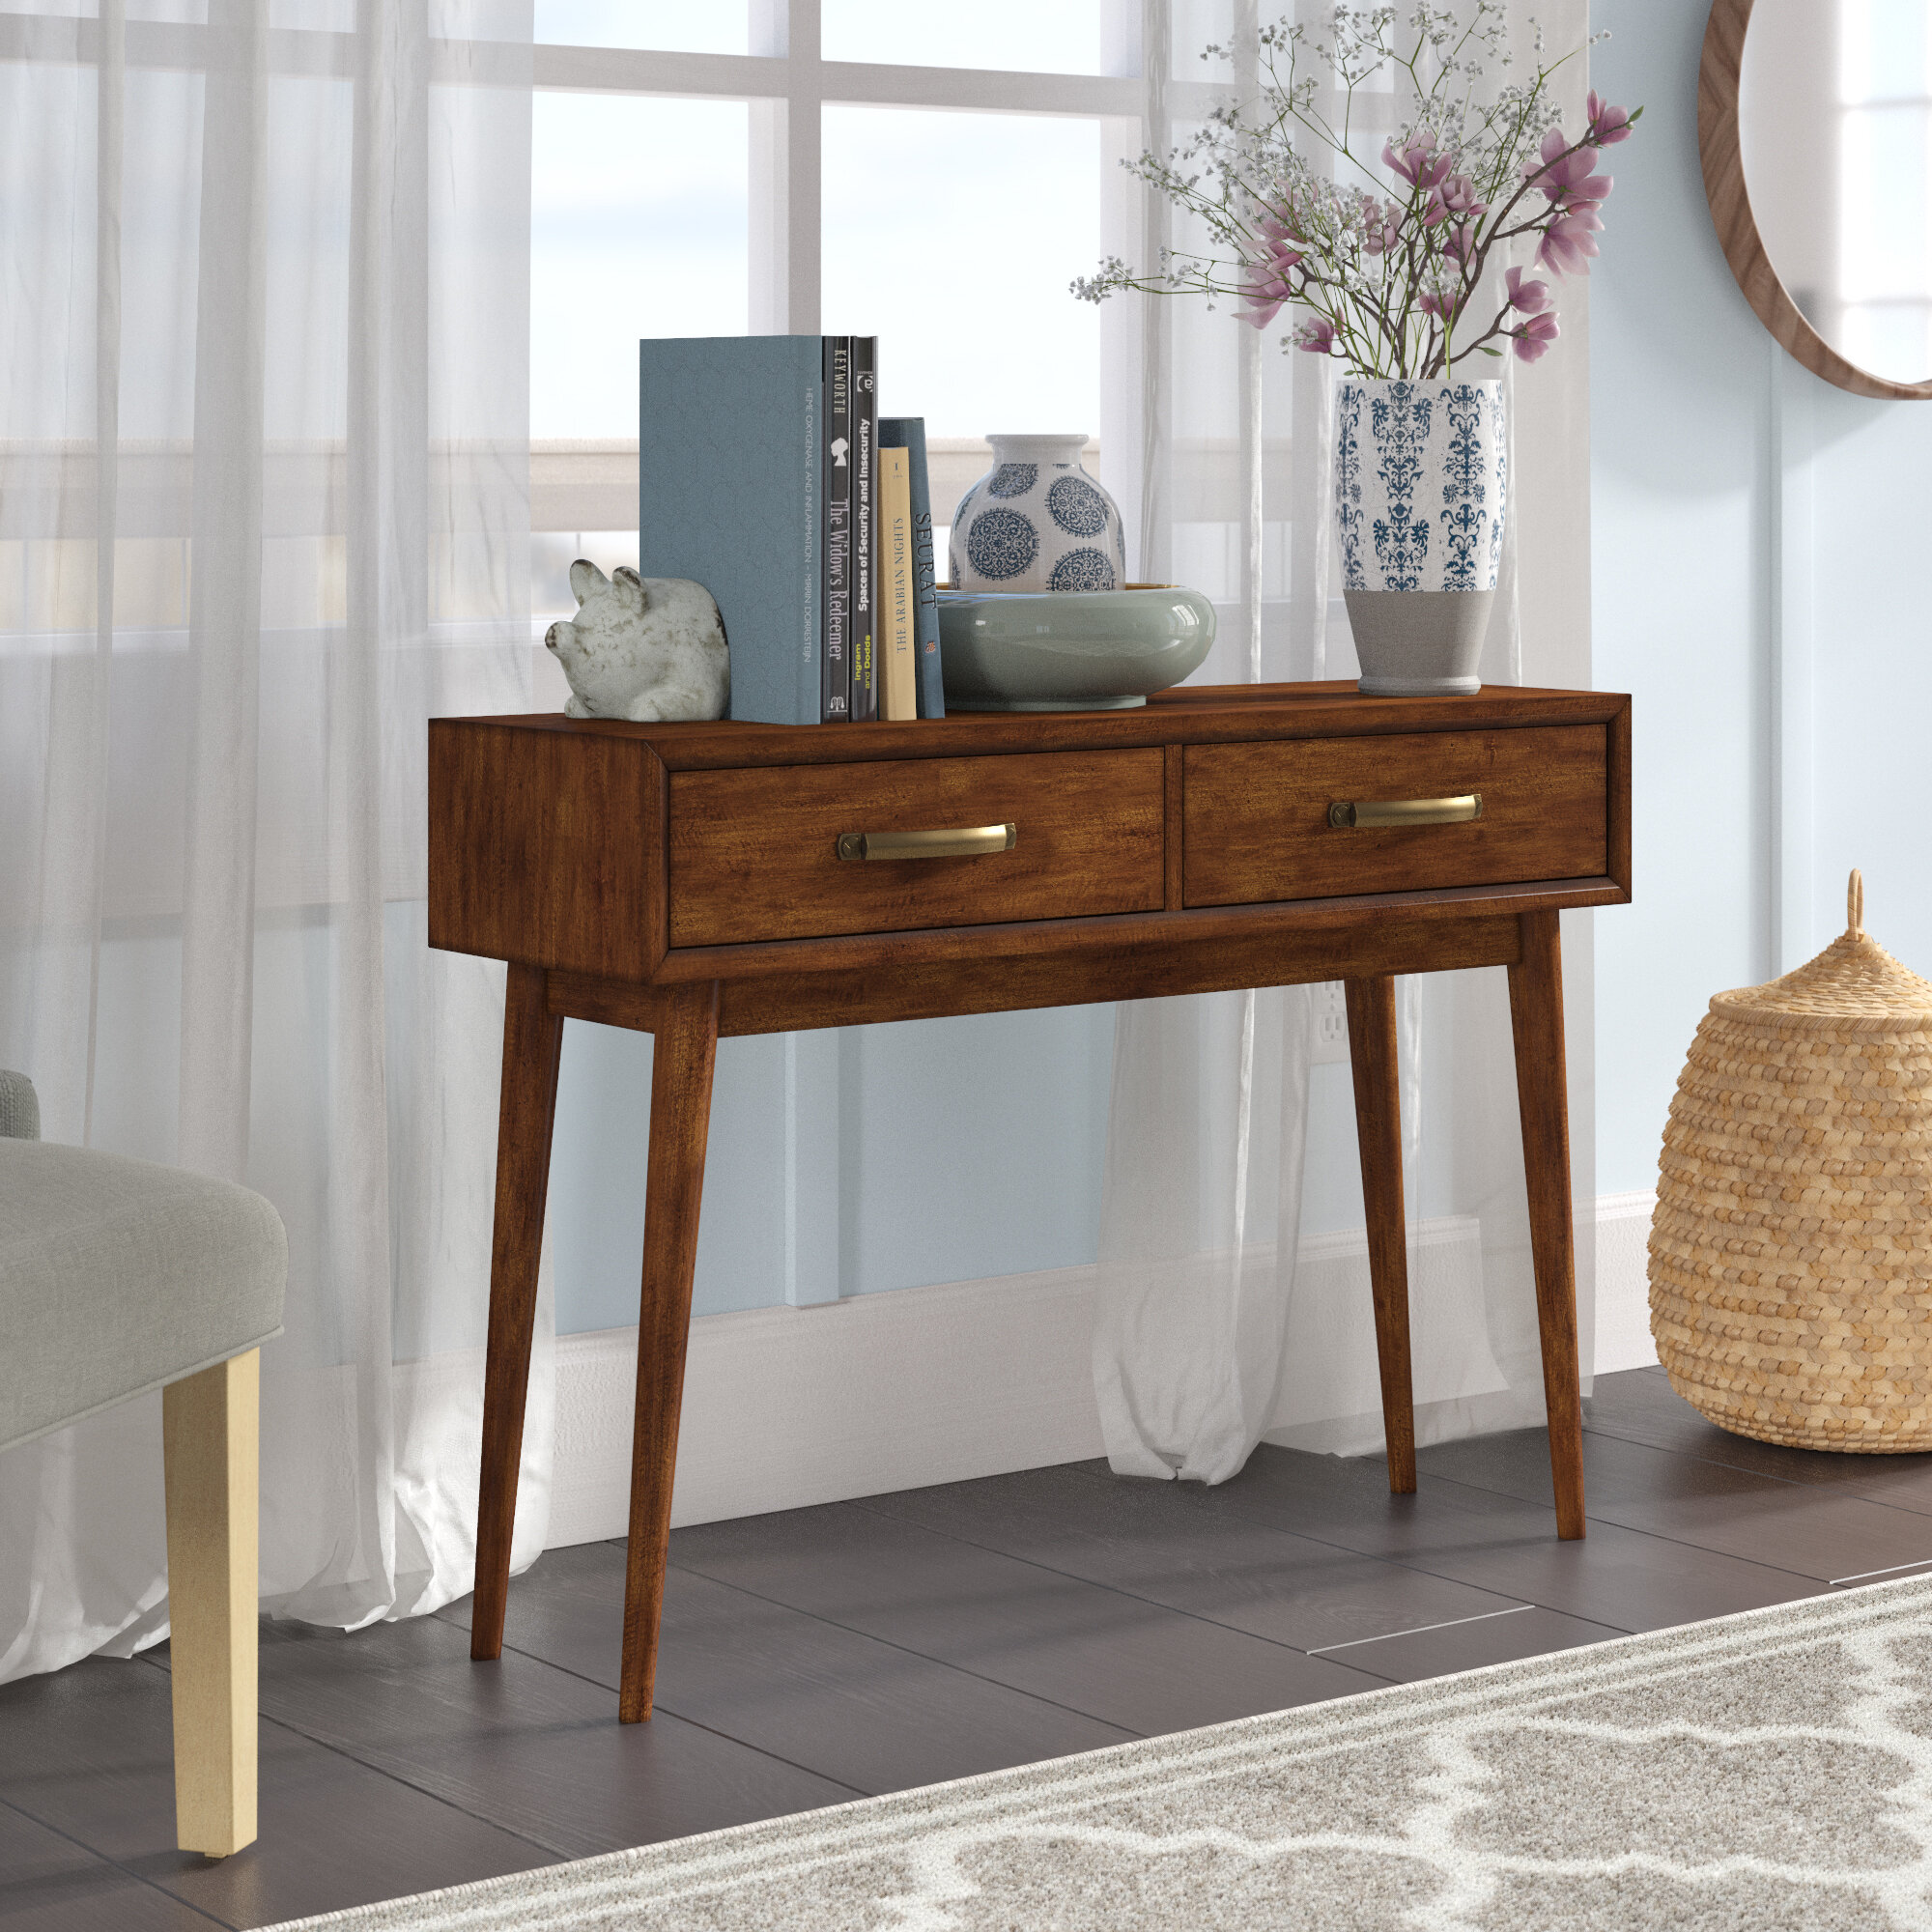 George oliver ripton mid century modern console table reviews wayfair